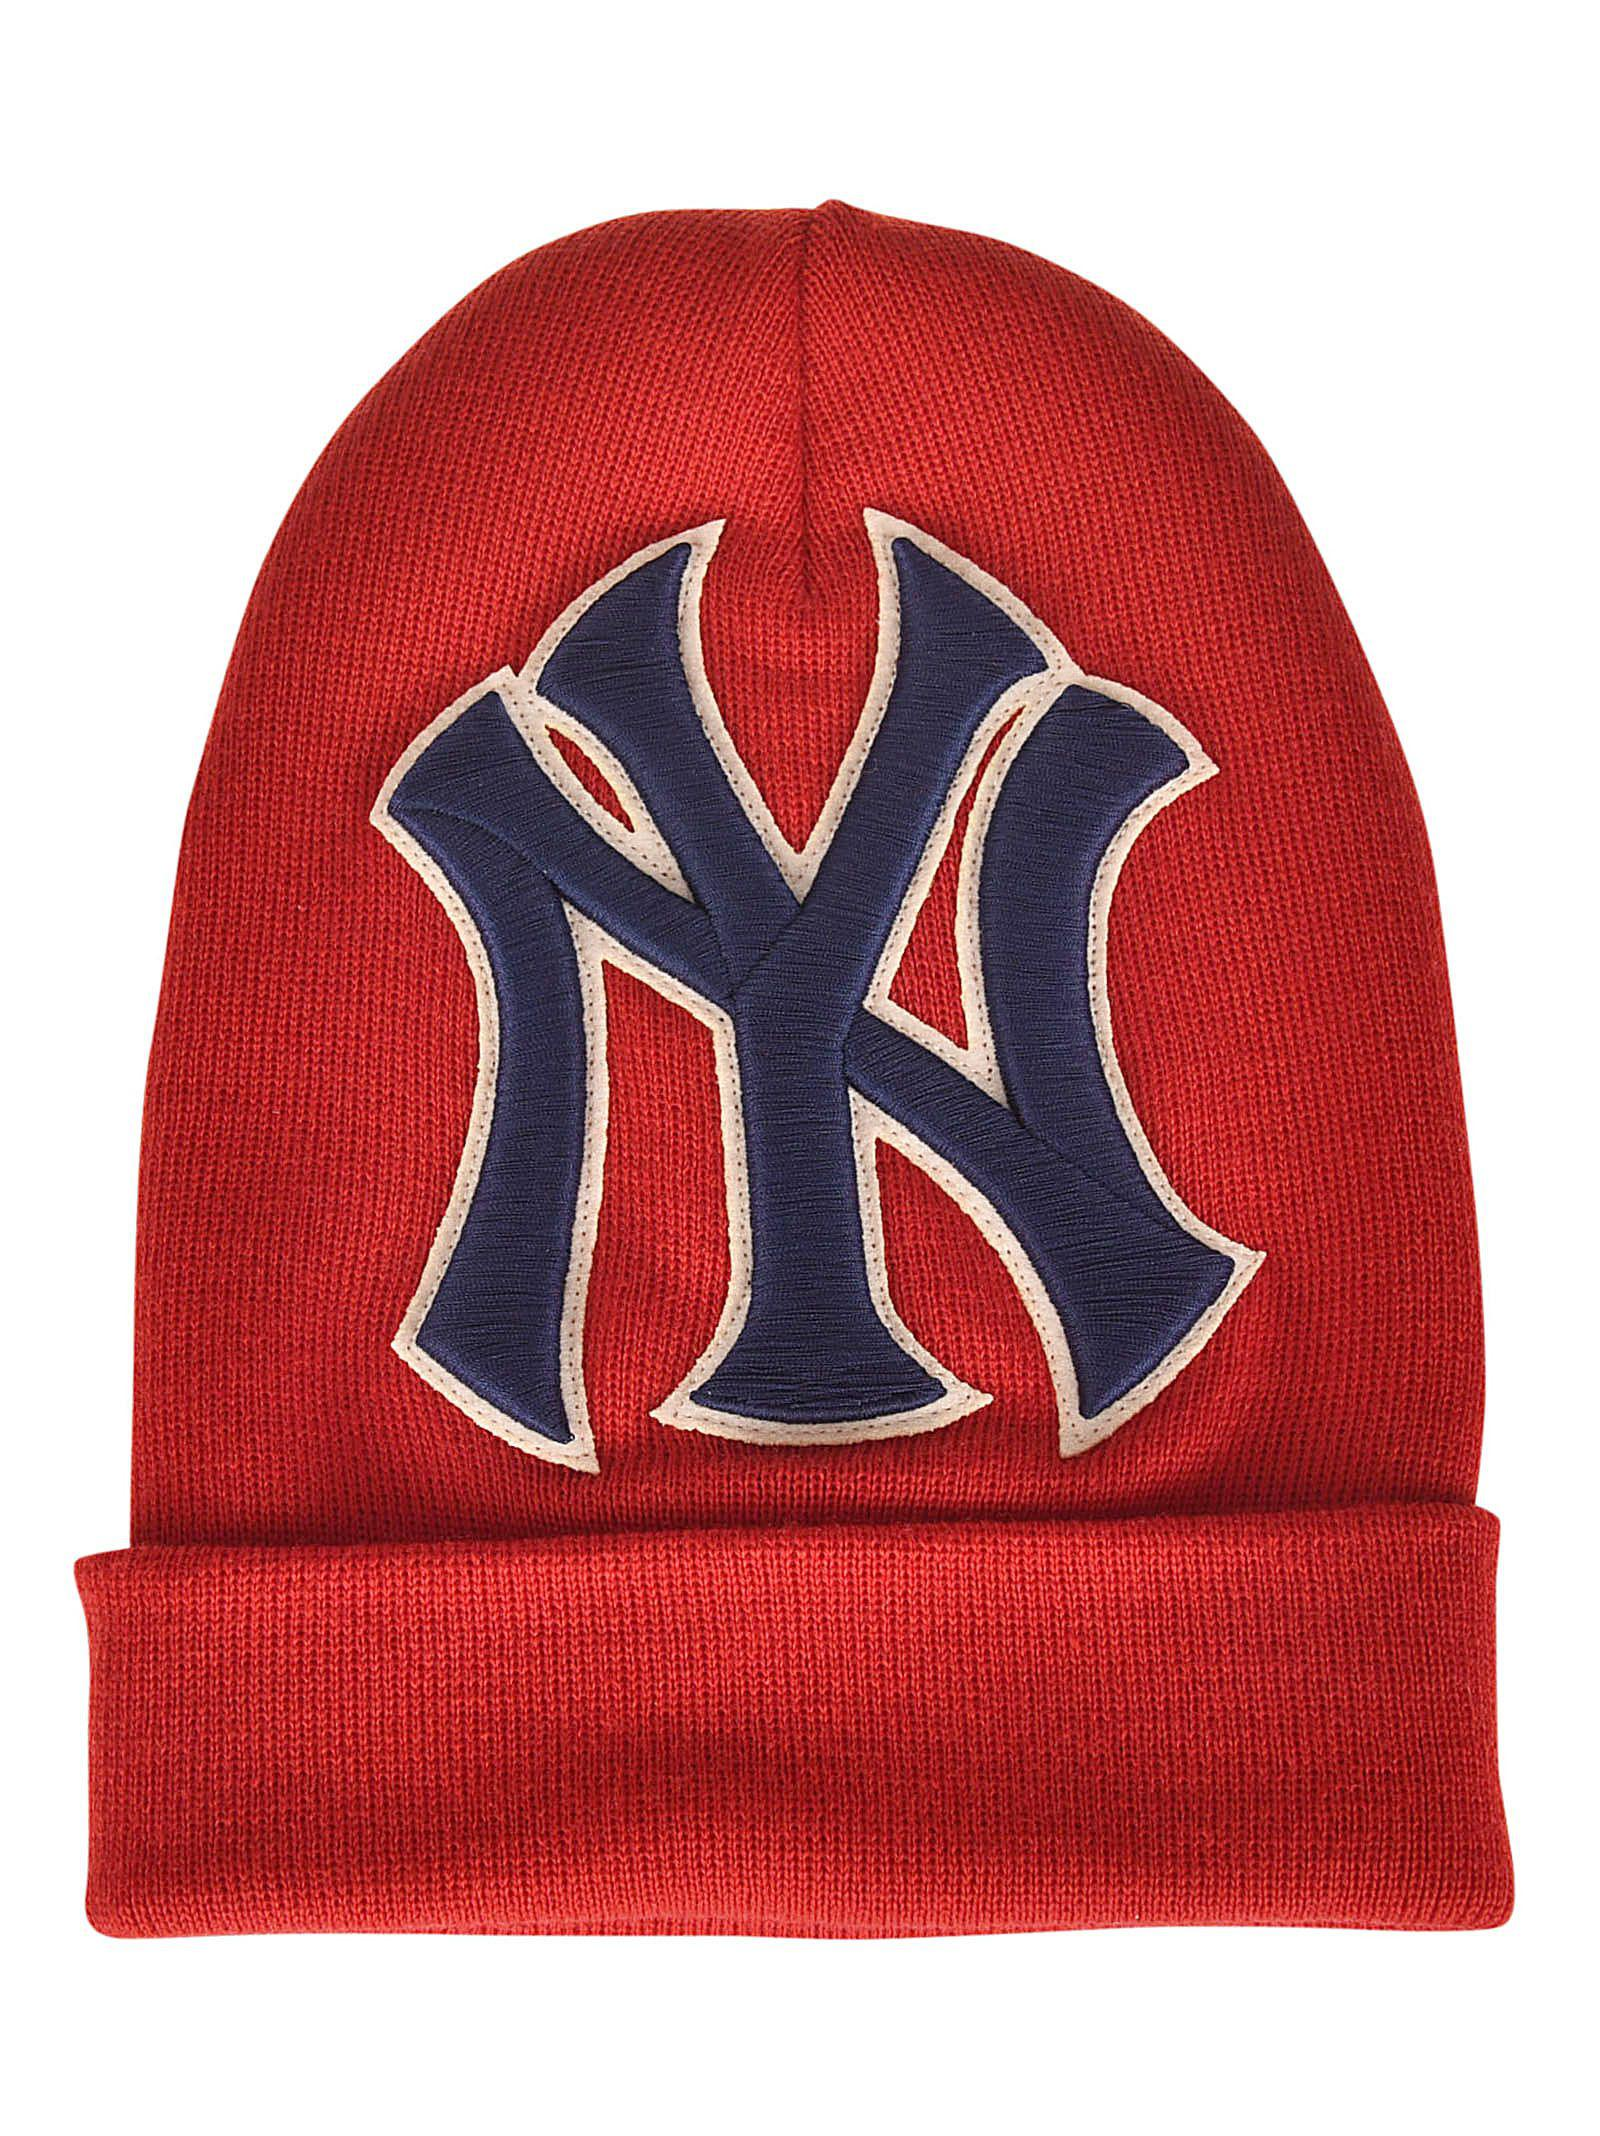 7df9769f94bf Gucci Men s New York Yankees Mlb Patch Beanie Hat In Red